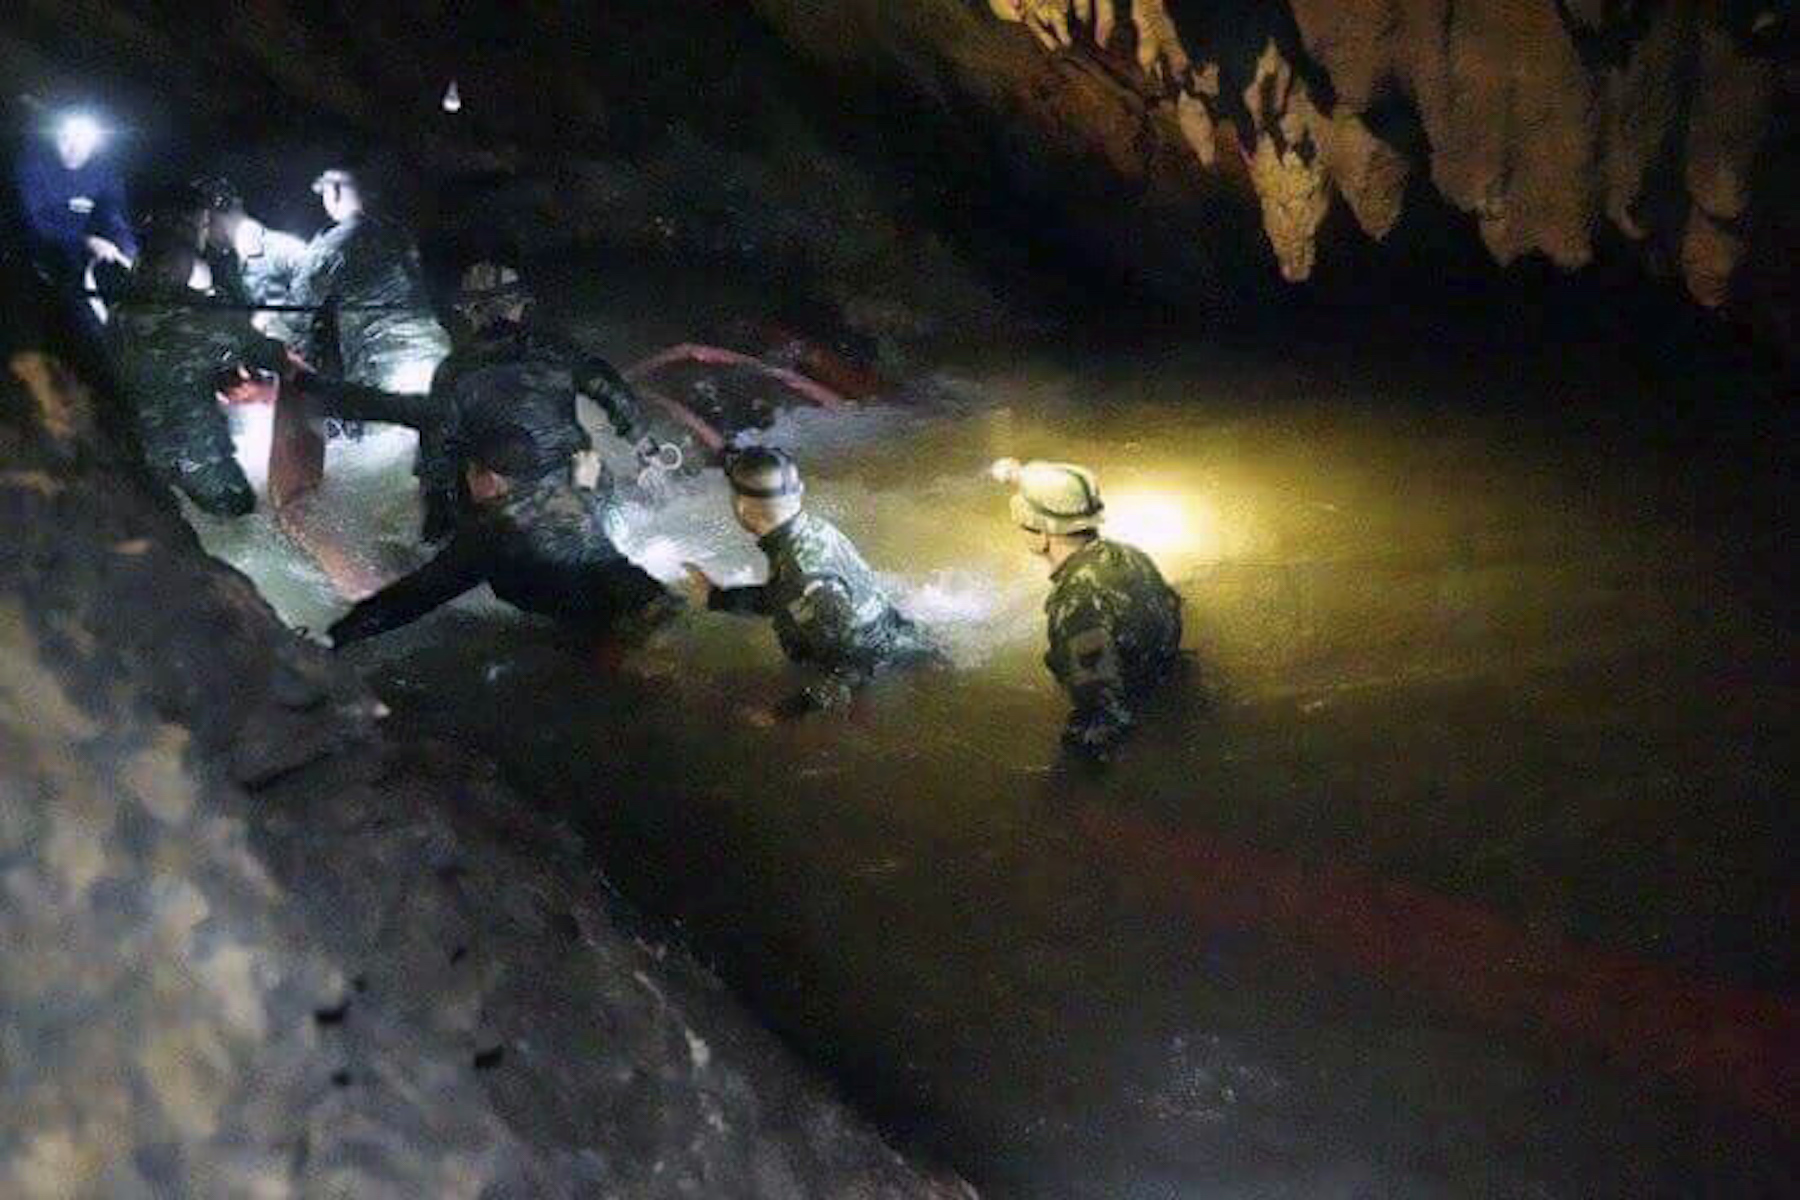 <div class='meta'><div class='origin-logo' data-origin='AP'></div><span class='caption-text' data-credit='Tham Luang Rescue Operation Center via AP'>Thai rescues team walk inside cave complex where 12 boys and their soccer coach went missing, in Mae Sai, Chiang Rai province, in northern Thailand, Monday, July 2, 2018.</span></div>